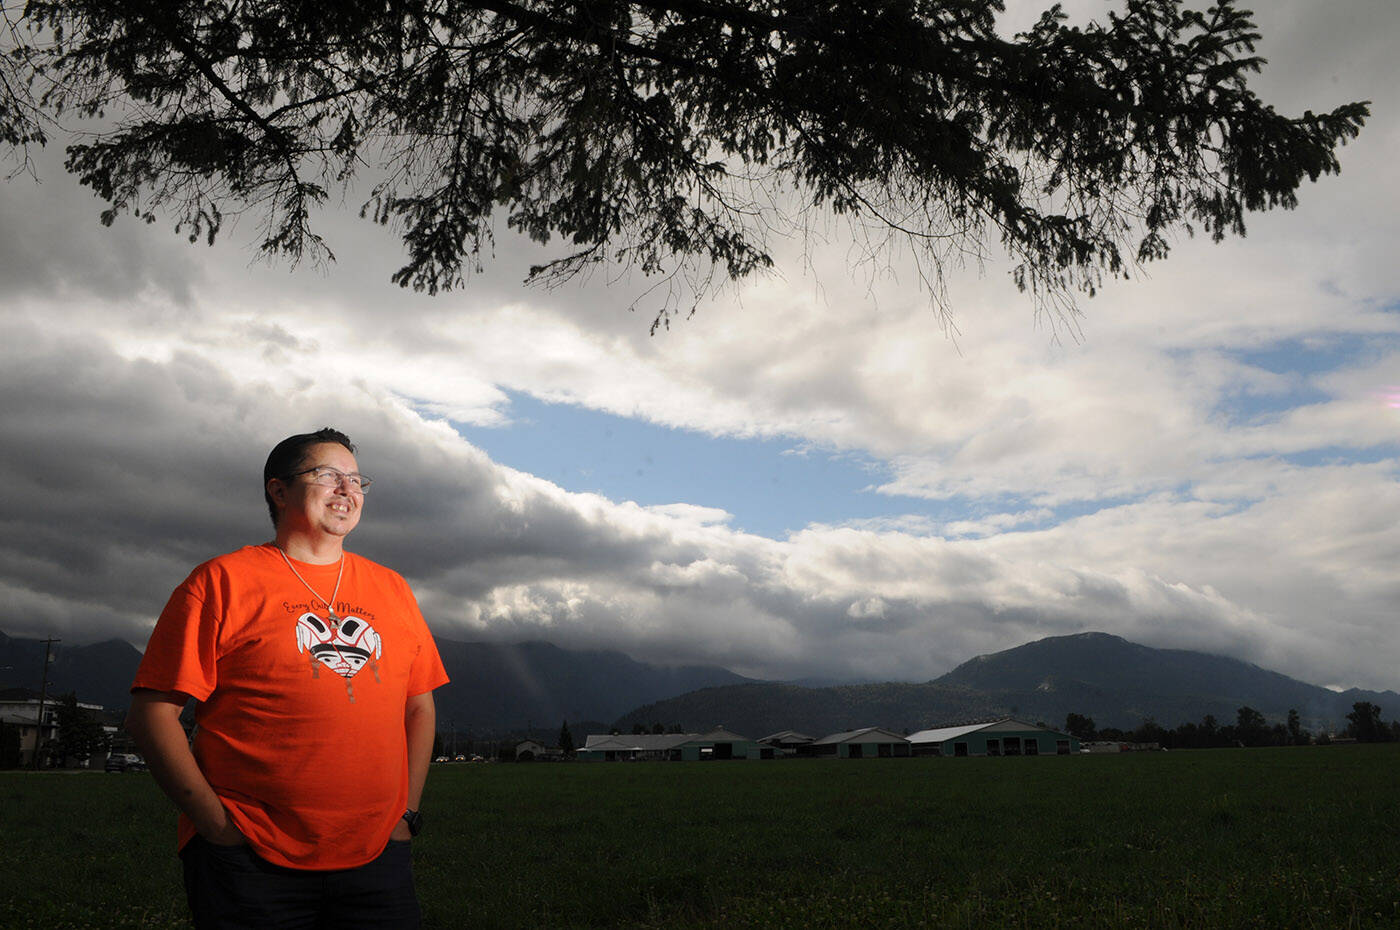 Shawn E. Baginski has been selling orange shirts he designed with all proceeds going to survivors of residential schools. He is pictured here in Chilliwack on Sept. 28, 2021. (Jenna Hauck/ Chilliwack Progress)